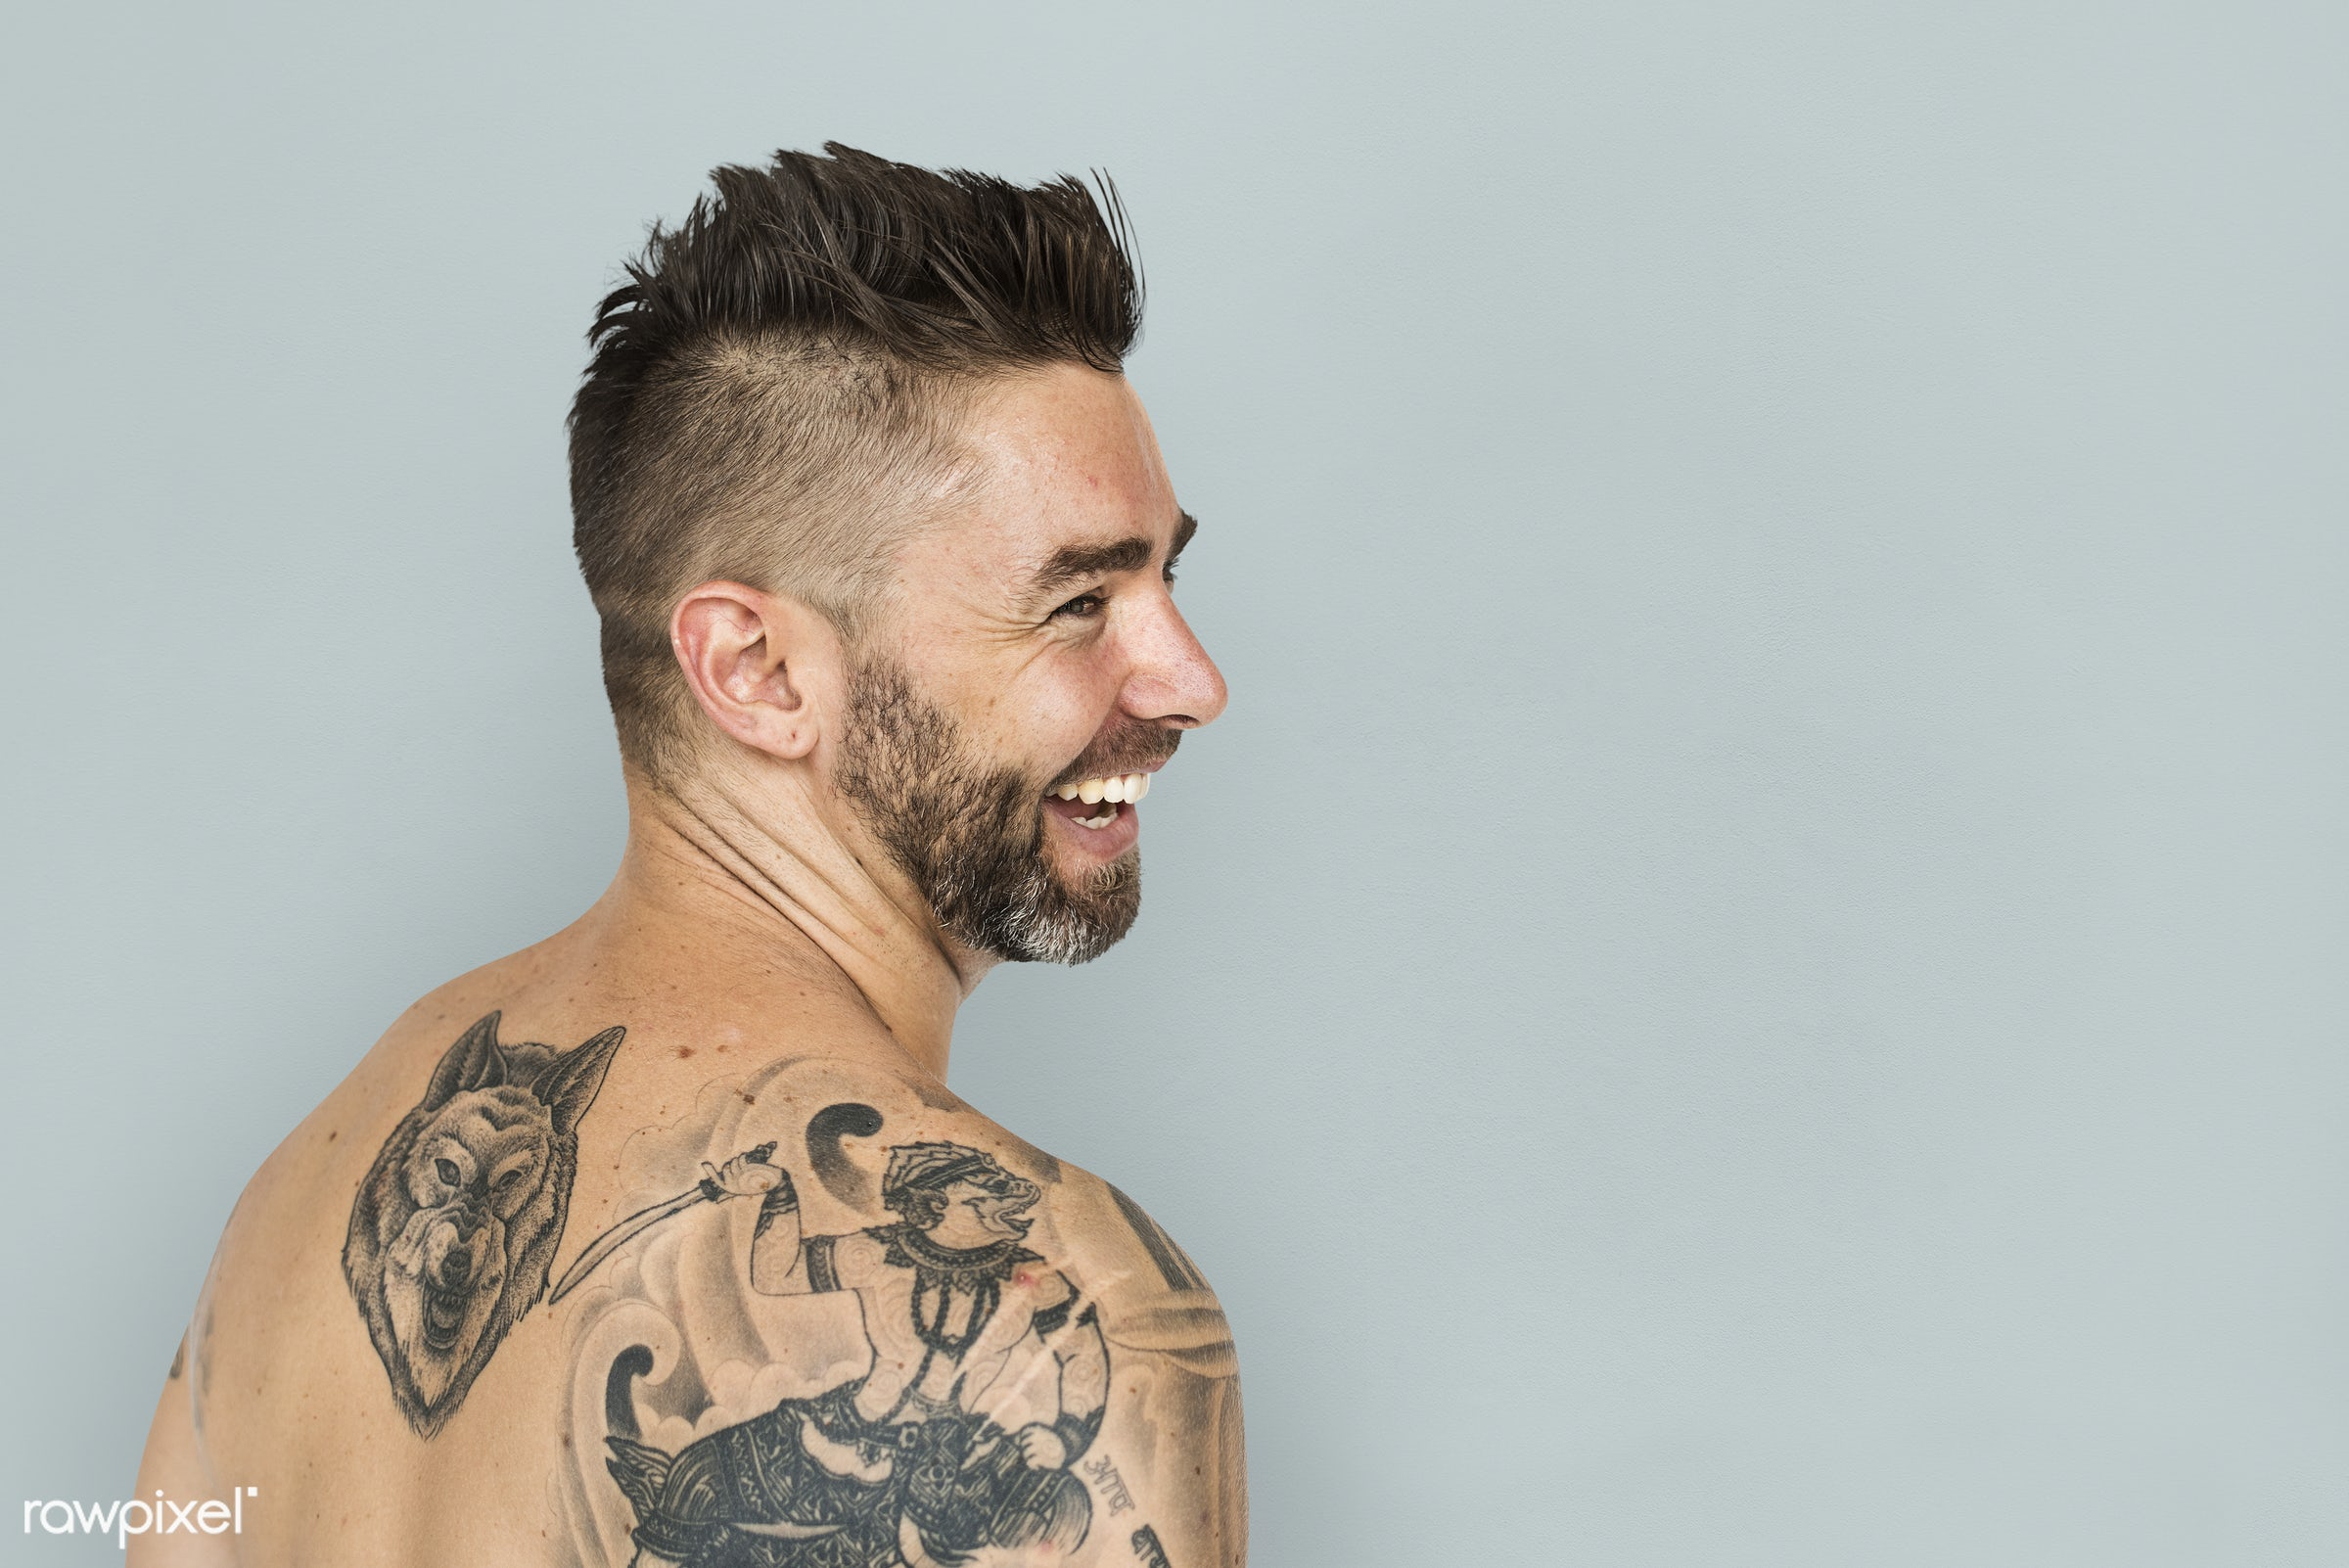 adult, back, back shot, back view, background, bare chest, beard, caucasian, cheerful, design, emotion, expression, facial,...